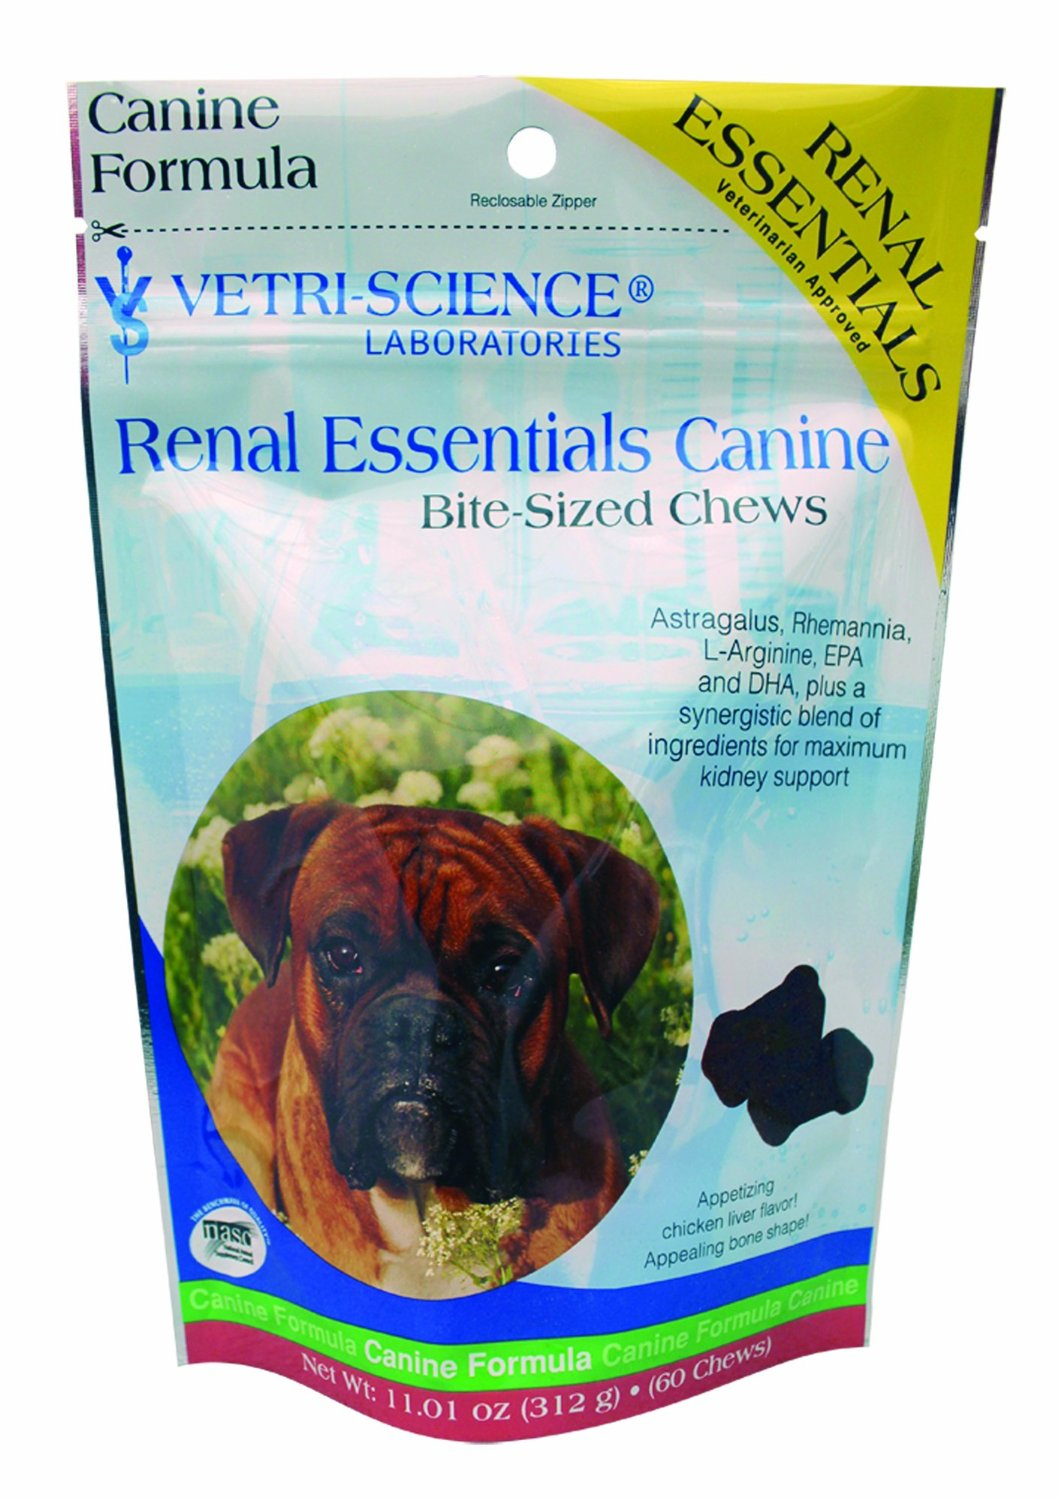 Vetri-Science Renal Essentials Canine